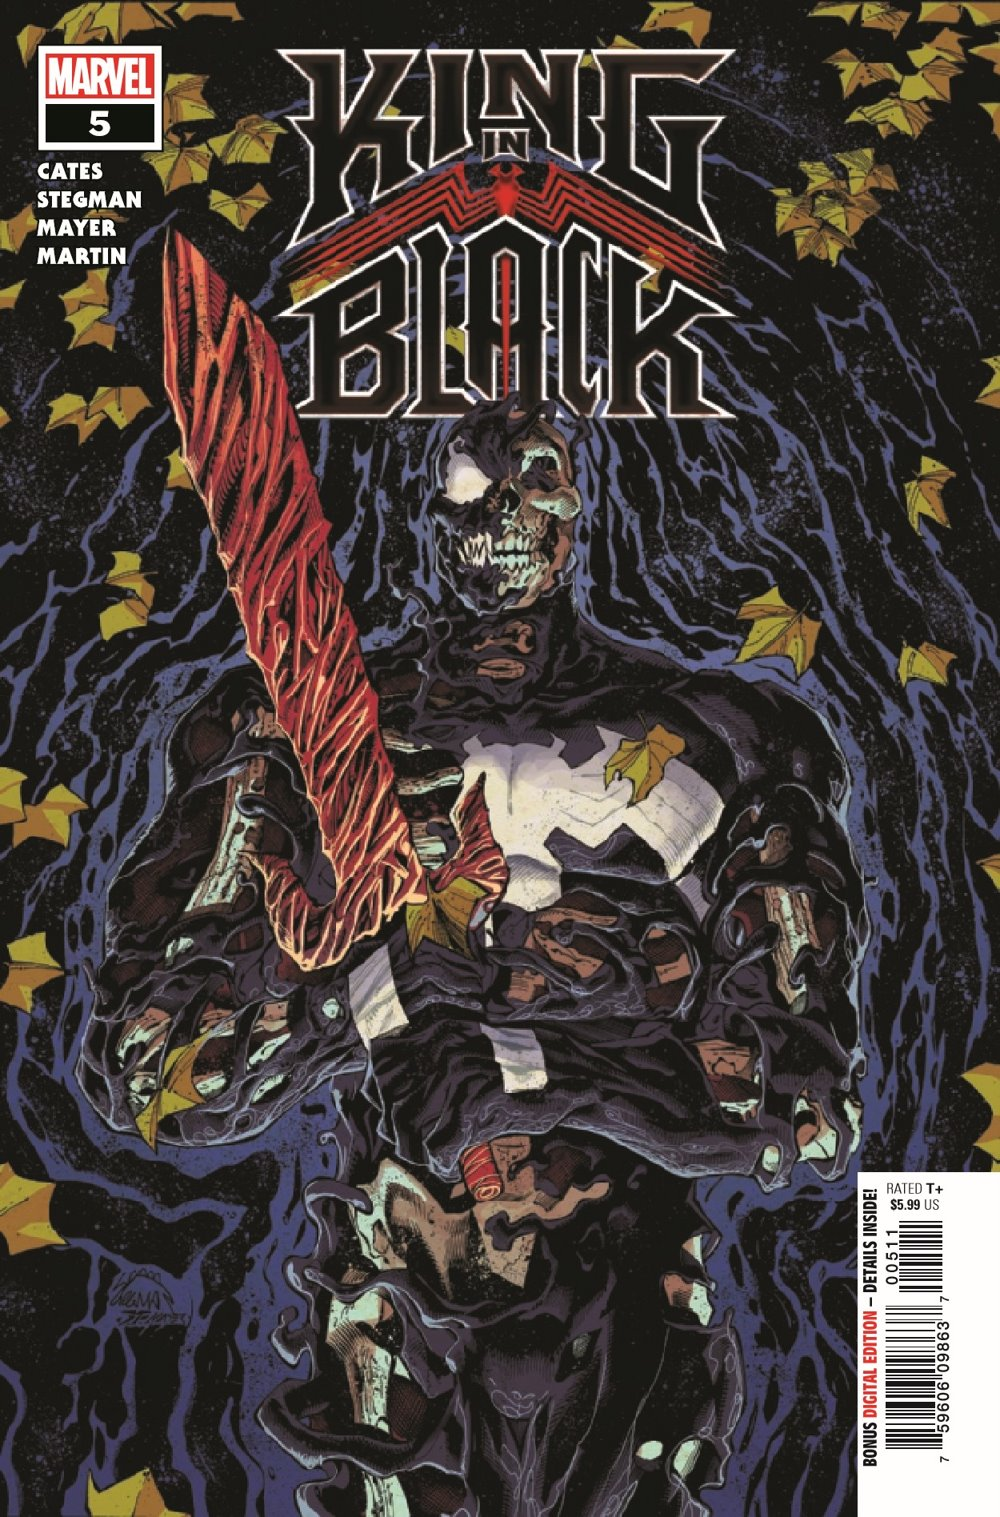 KINGINBLACK2020005_Preview-1 ComicList Previews: KING IN BLACK #5 (OF 5)